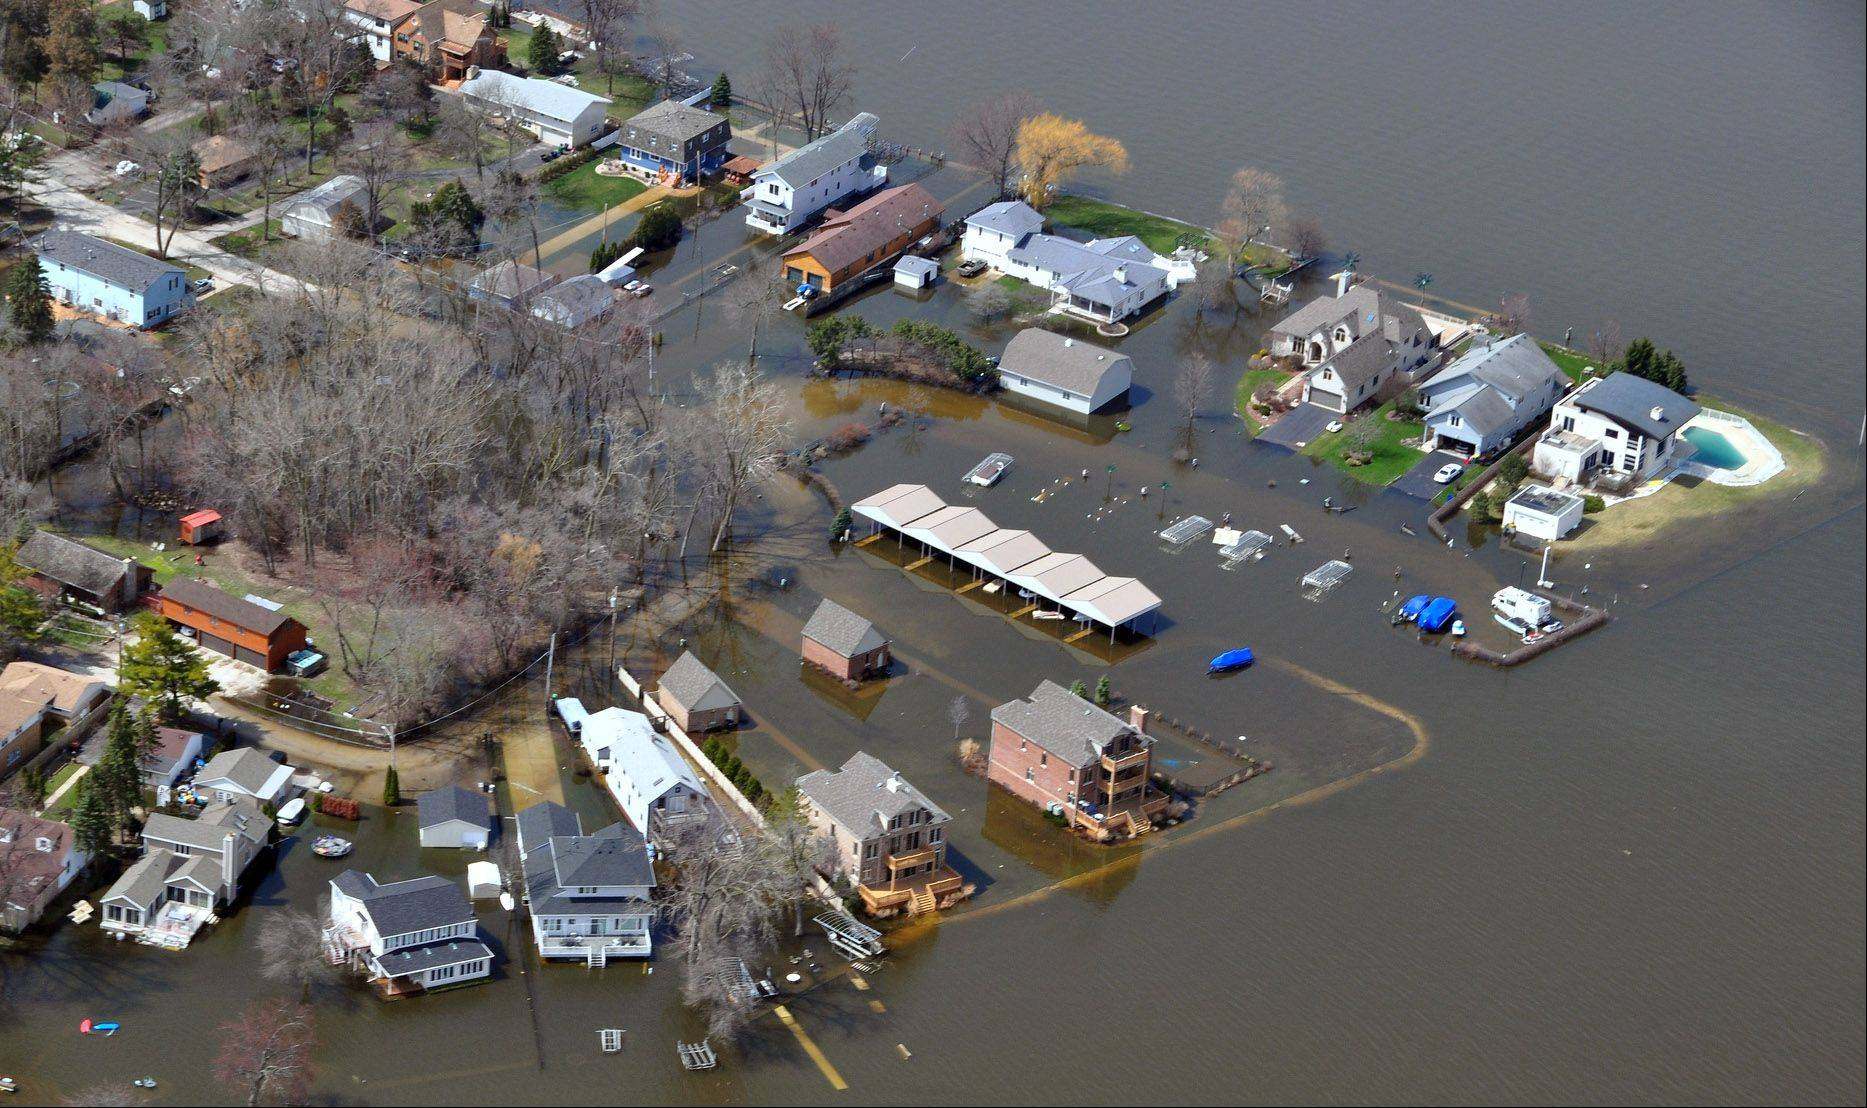 Pistakee Lake flooding in Fox Lake left many homes surrounded and damaged by floodwaters.